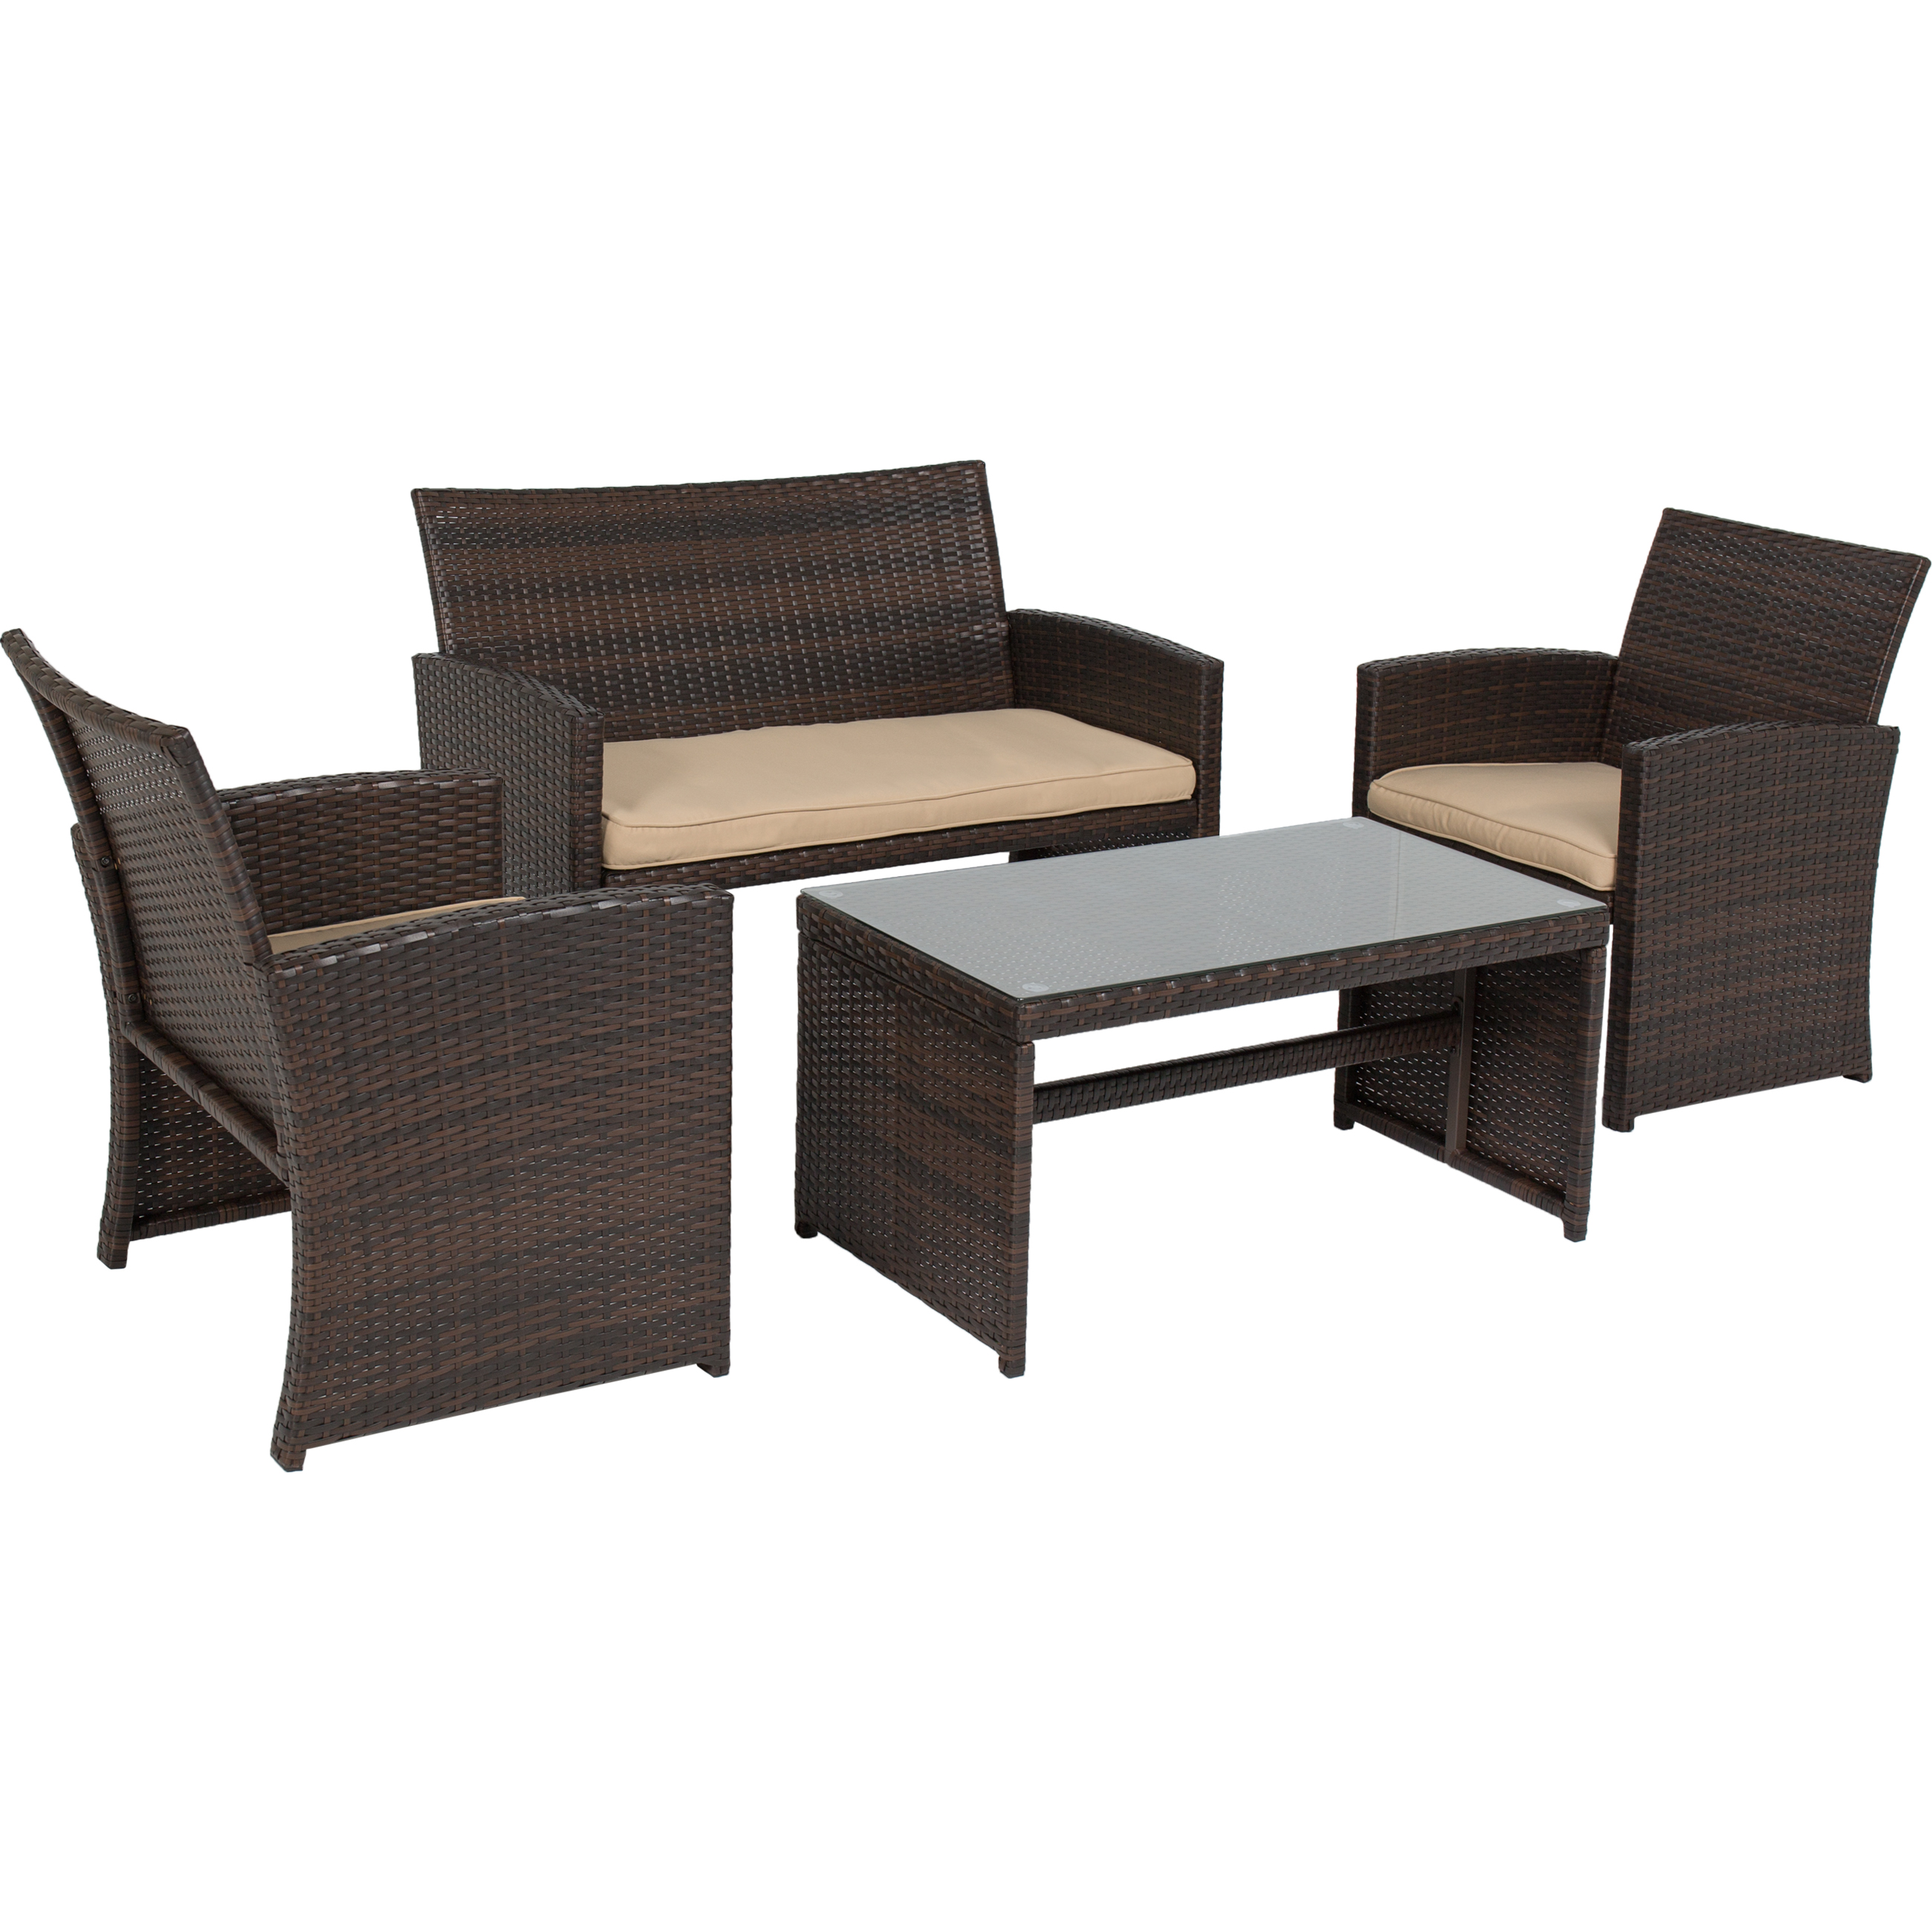 Elegant Best Choice Products 4pc Wicker Outdoor Patio Furniture Set Cushioned Seats  Image 2 Of 6 Part 31